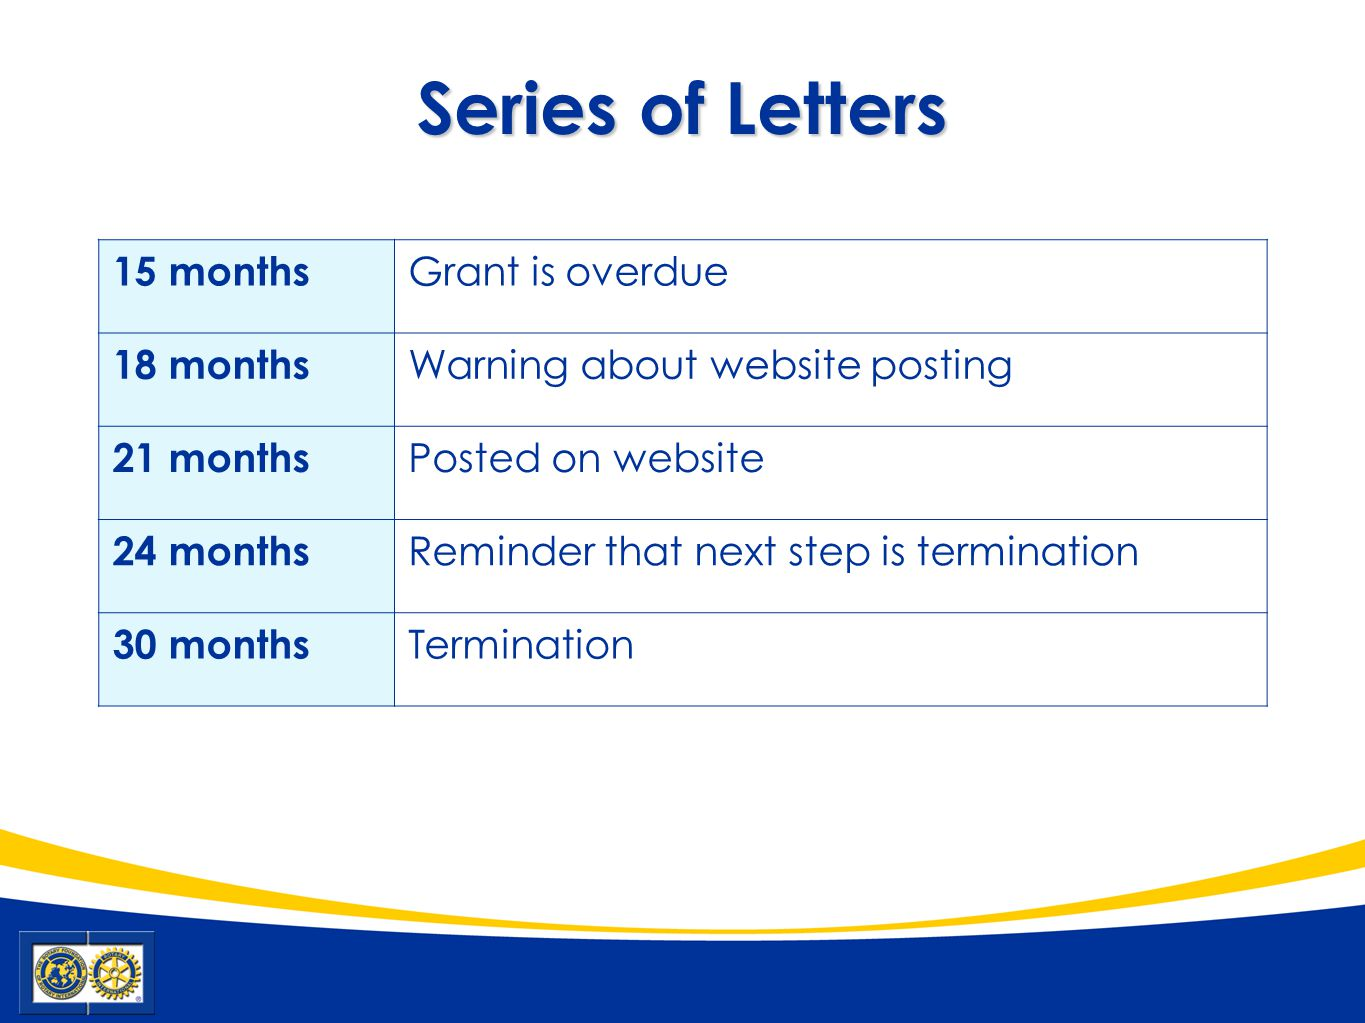 Series of Letters 15 months Grant is overdue 18 months Warning about website posting 21 months Posted on website 24 months Reminder that next step is termination 30 months Termination